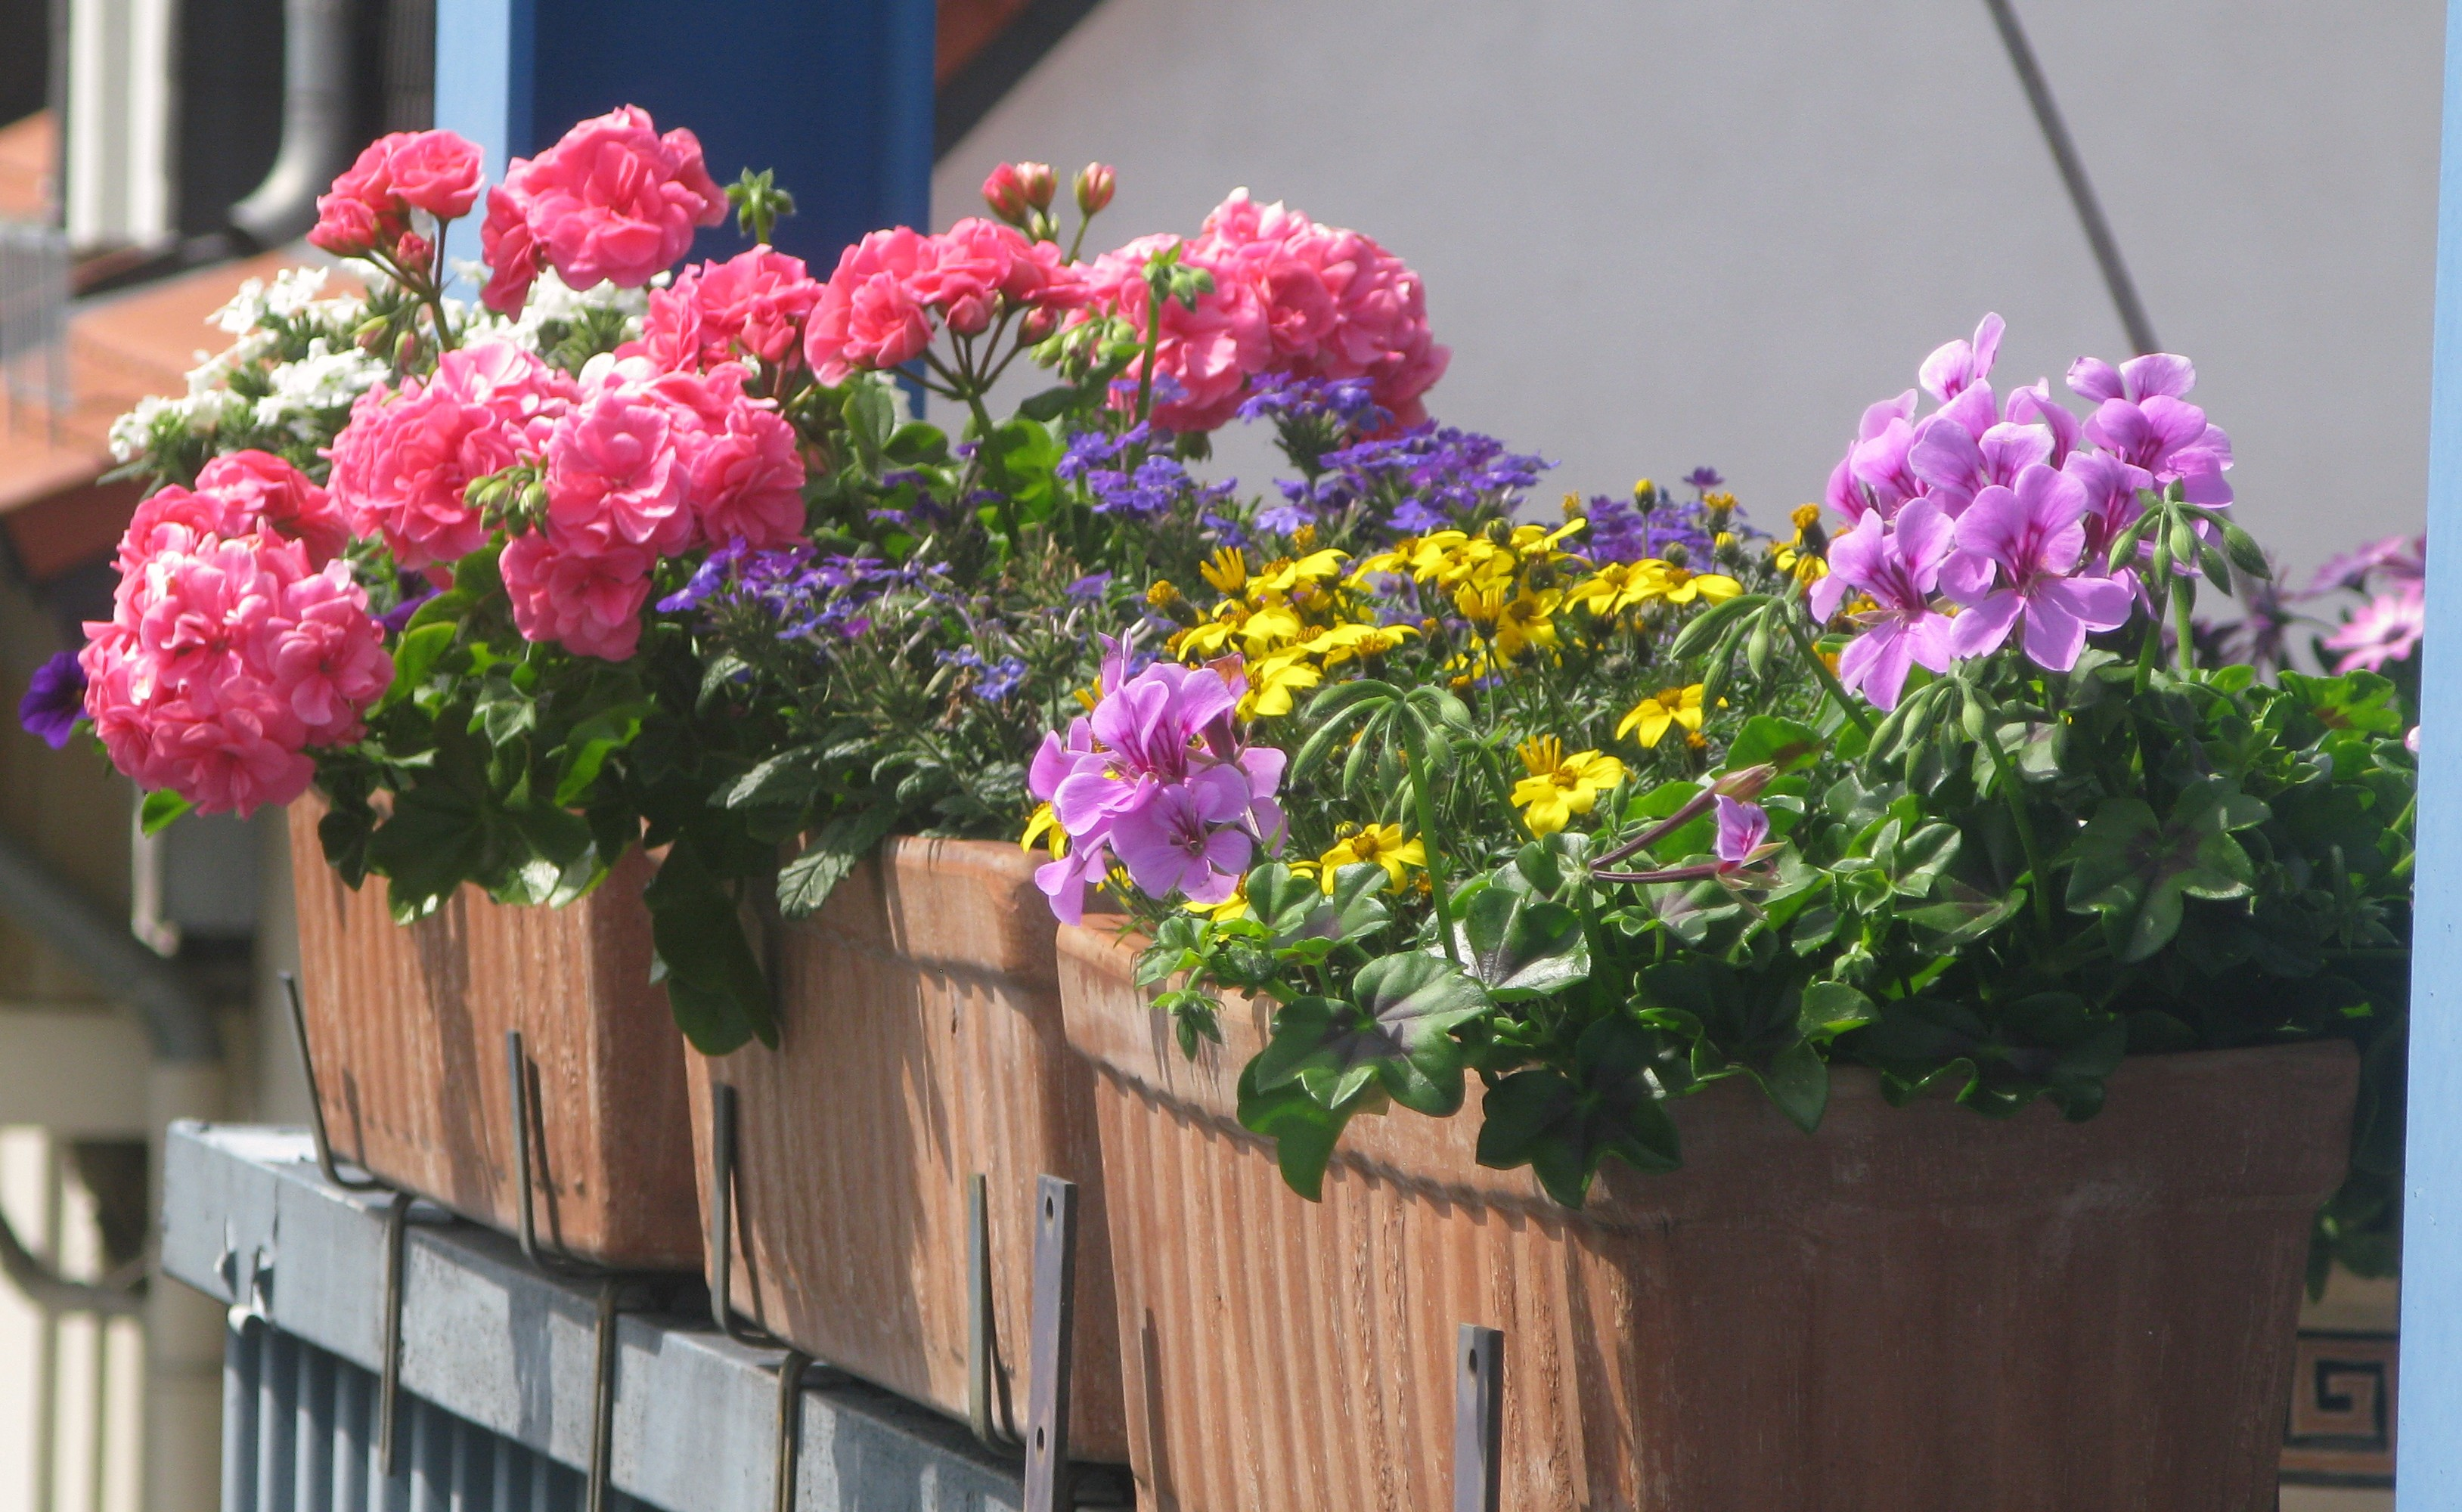 City gardening german style cosmos and cleome - Flowers for apartment balcony ...